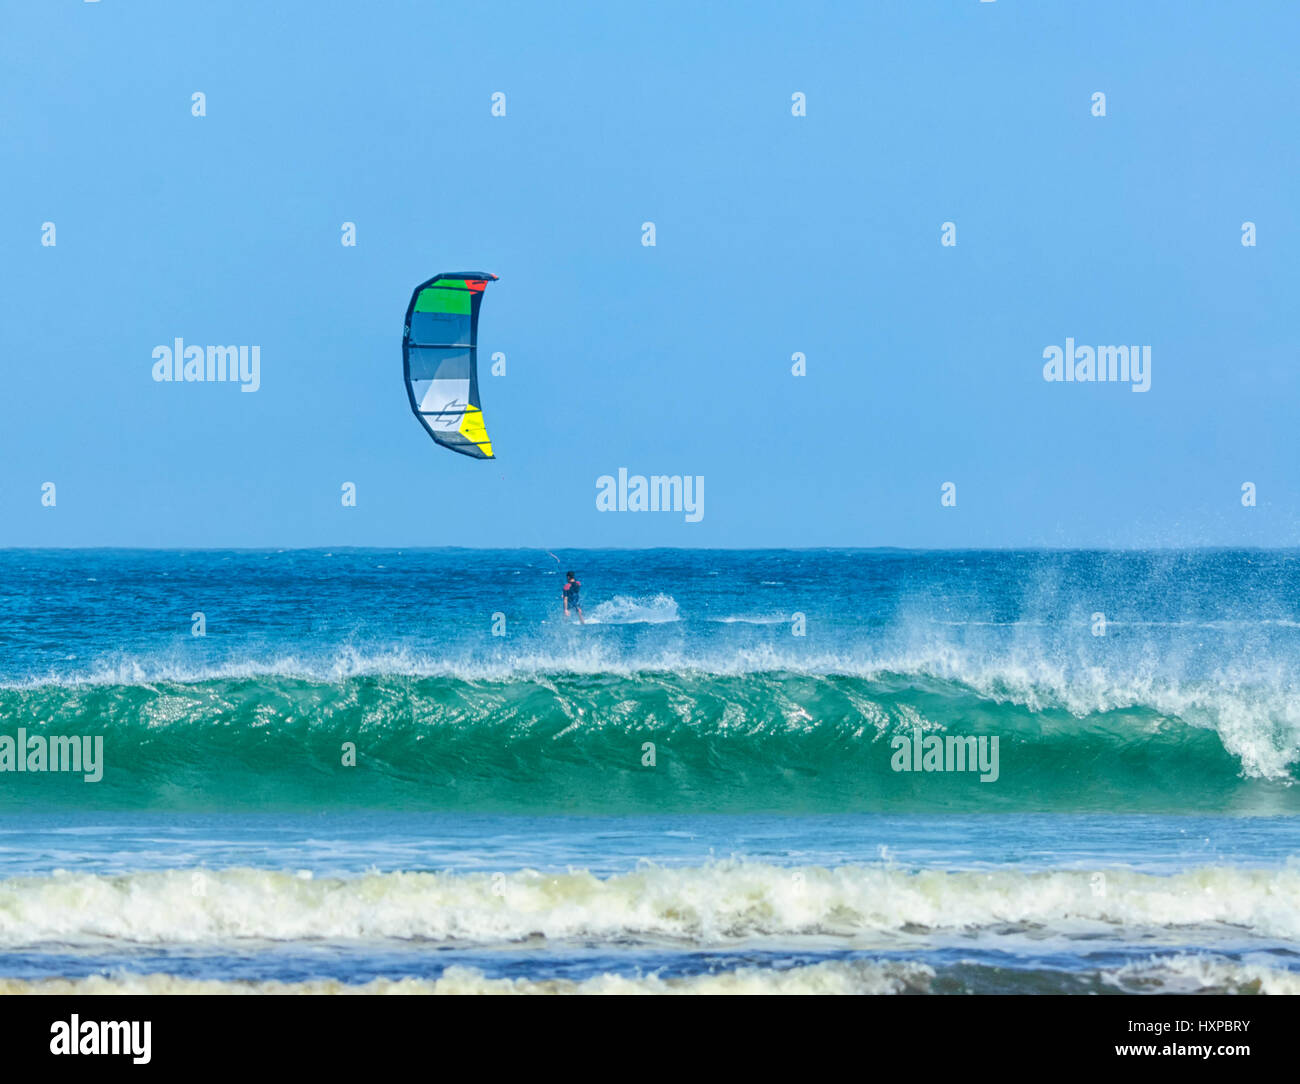 Kite surfer with a turquoise breaking wave at Seven Mile Beach, Gerroa, Illawarra Coast, New South Wales, NSW, Australia - Stock Image